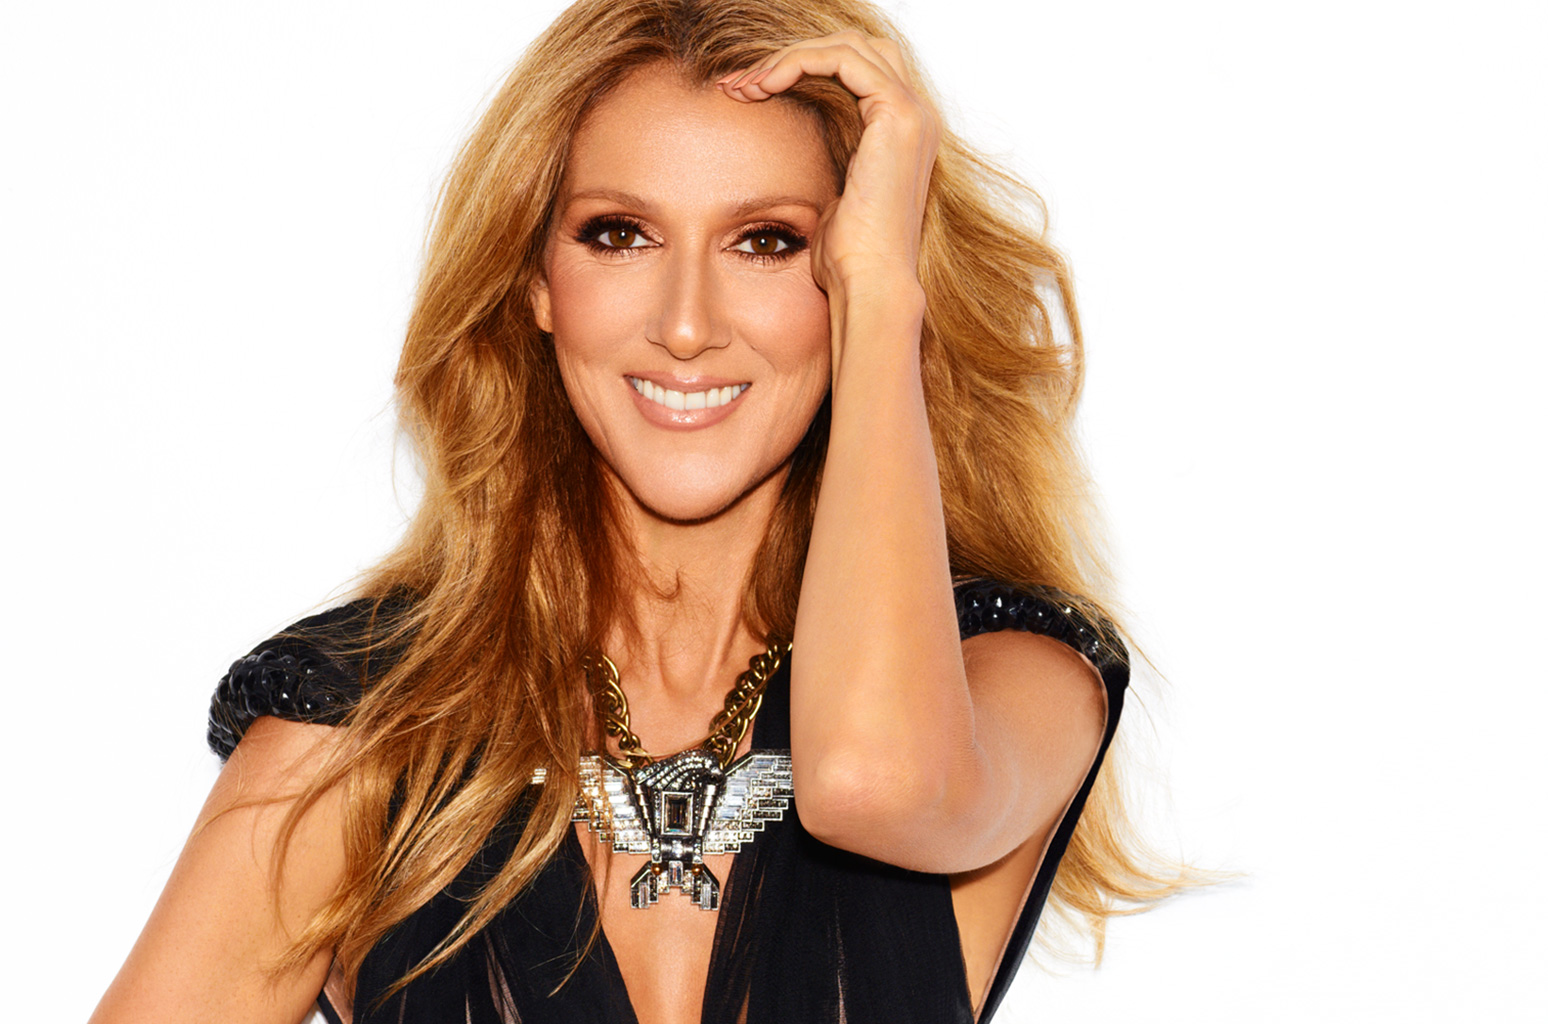 Celine Dion will perform in Singapore in July